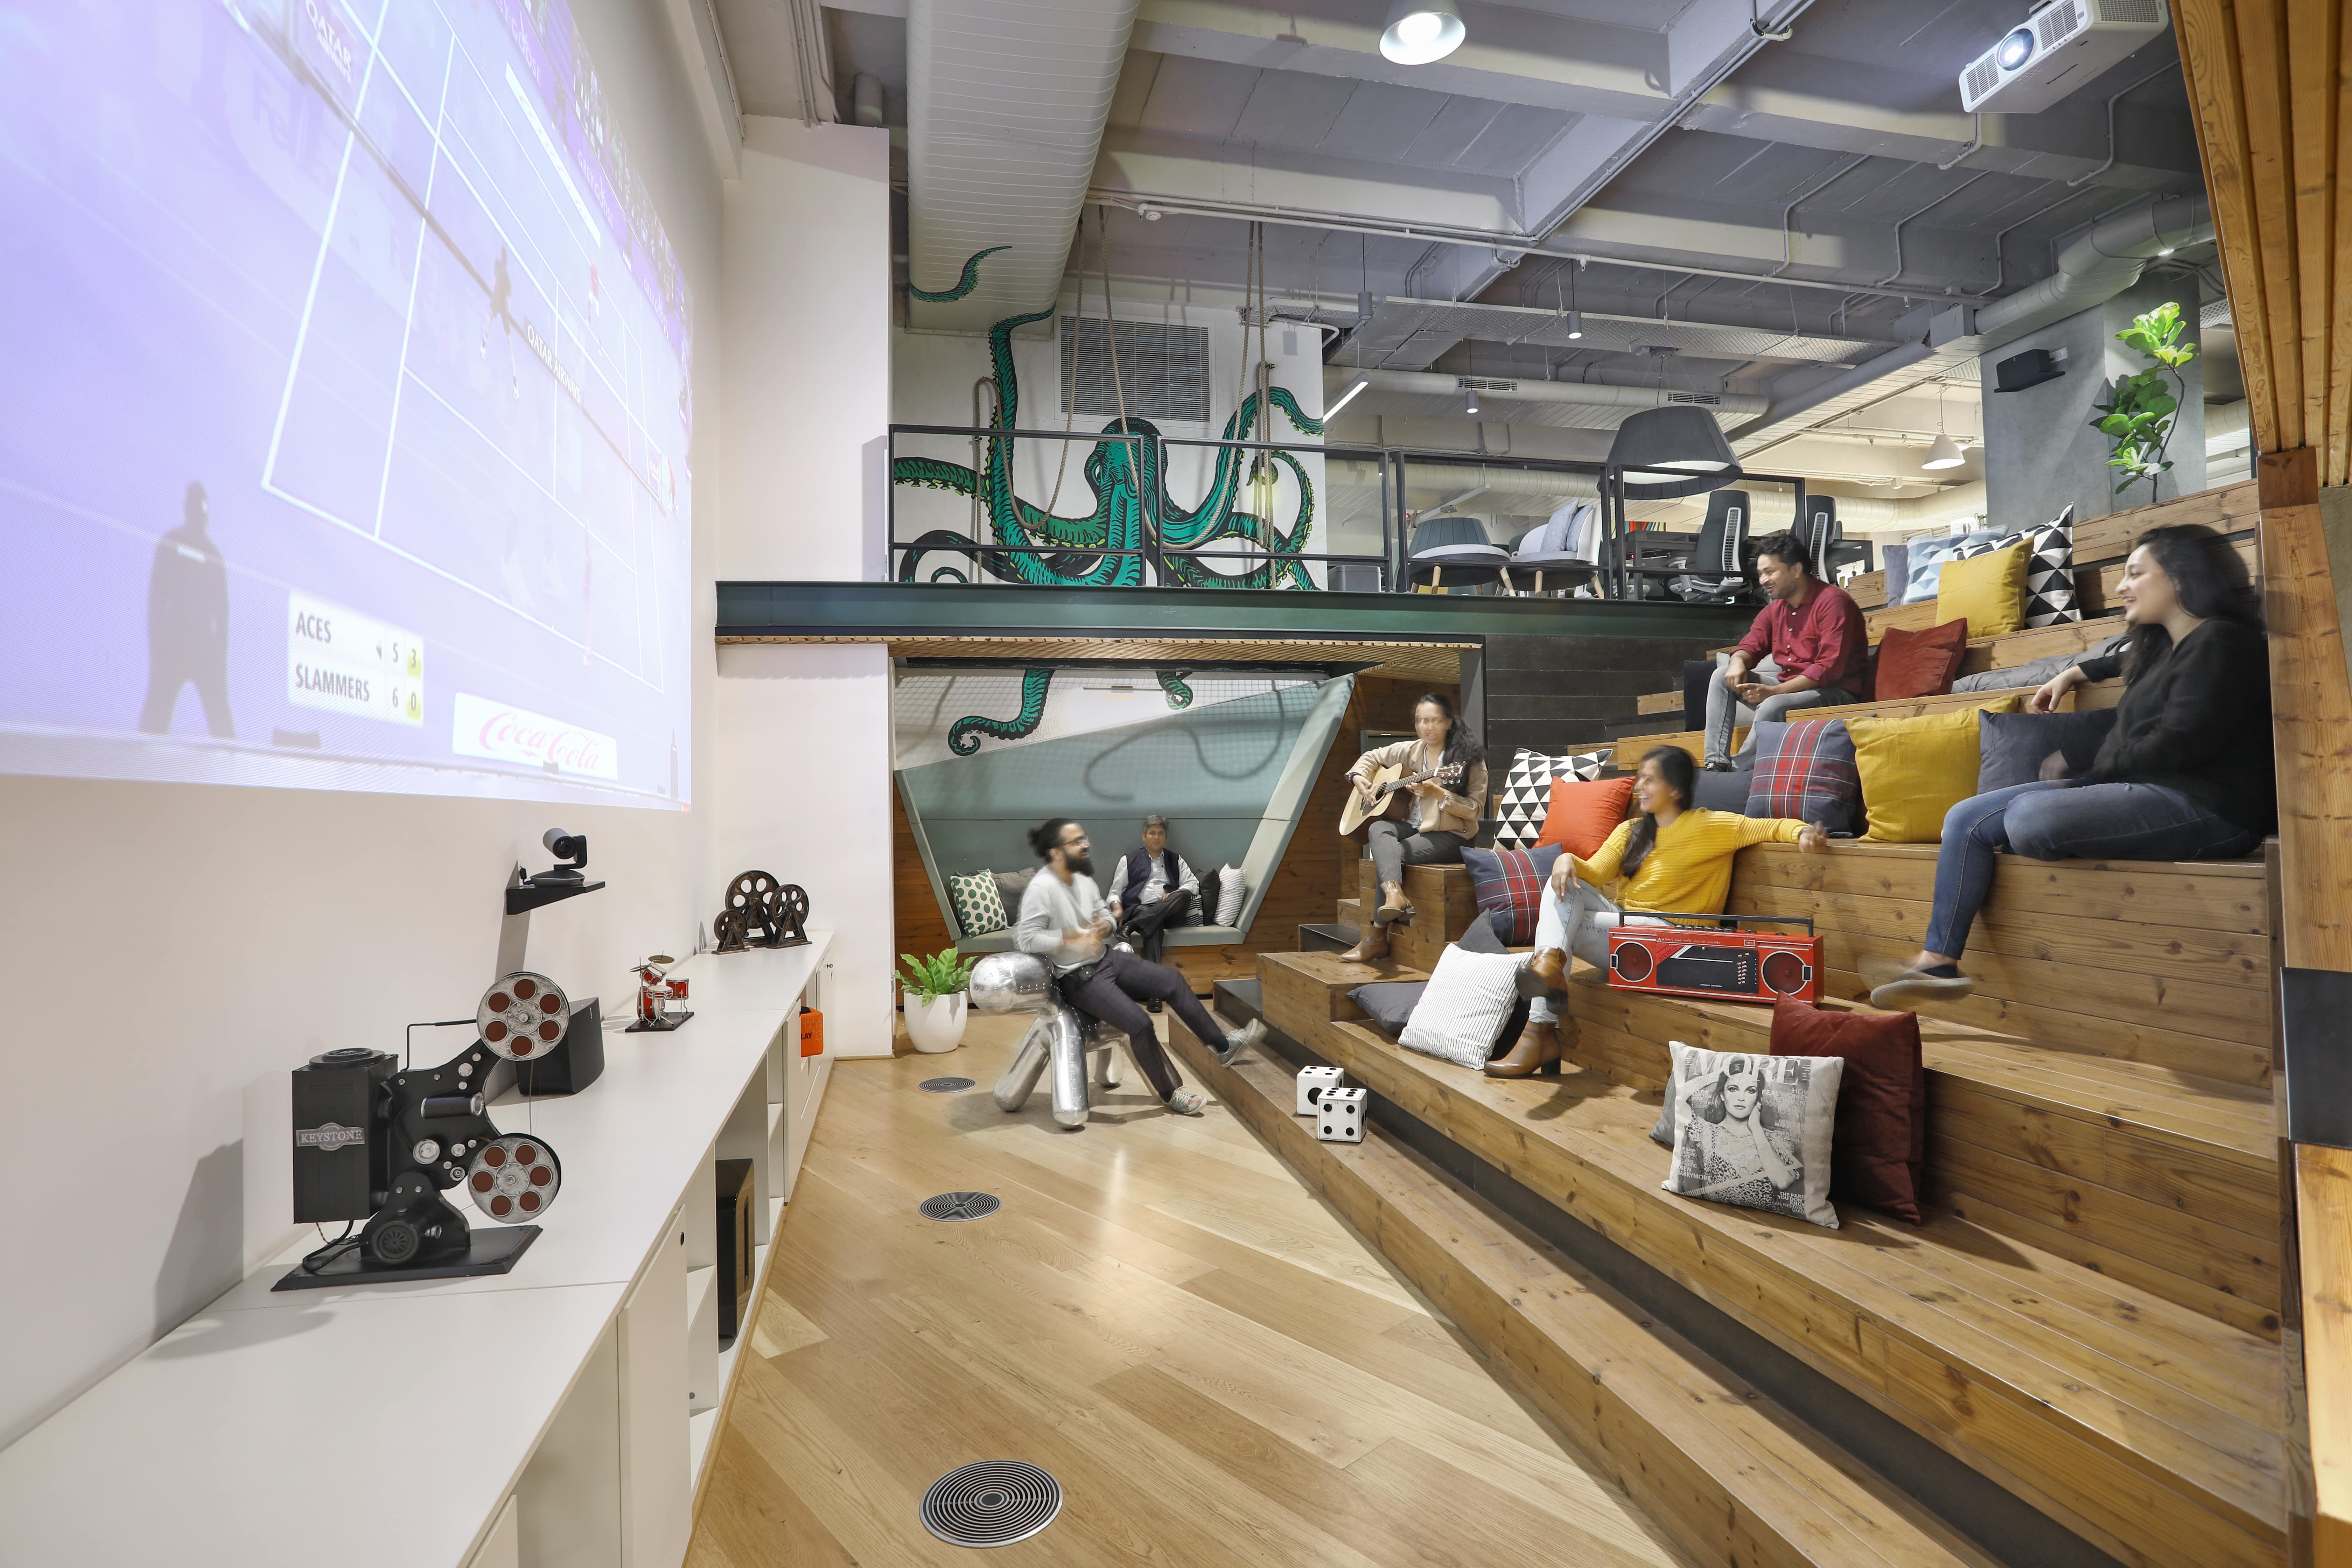 Space Matrix Beta Lab is an incubator workplace that is designed for hybrid work